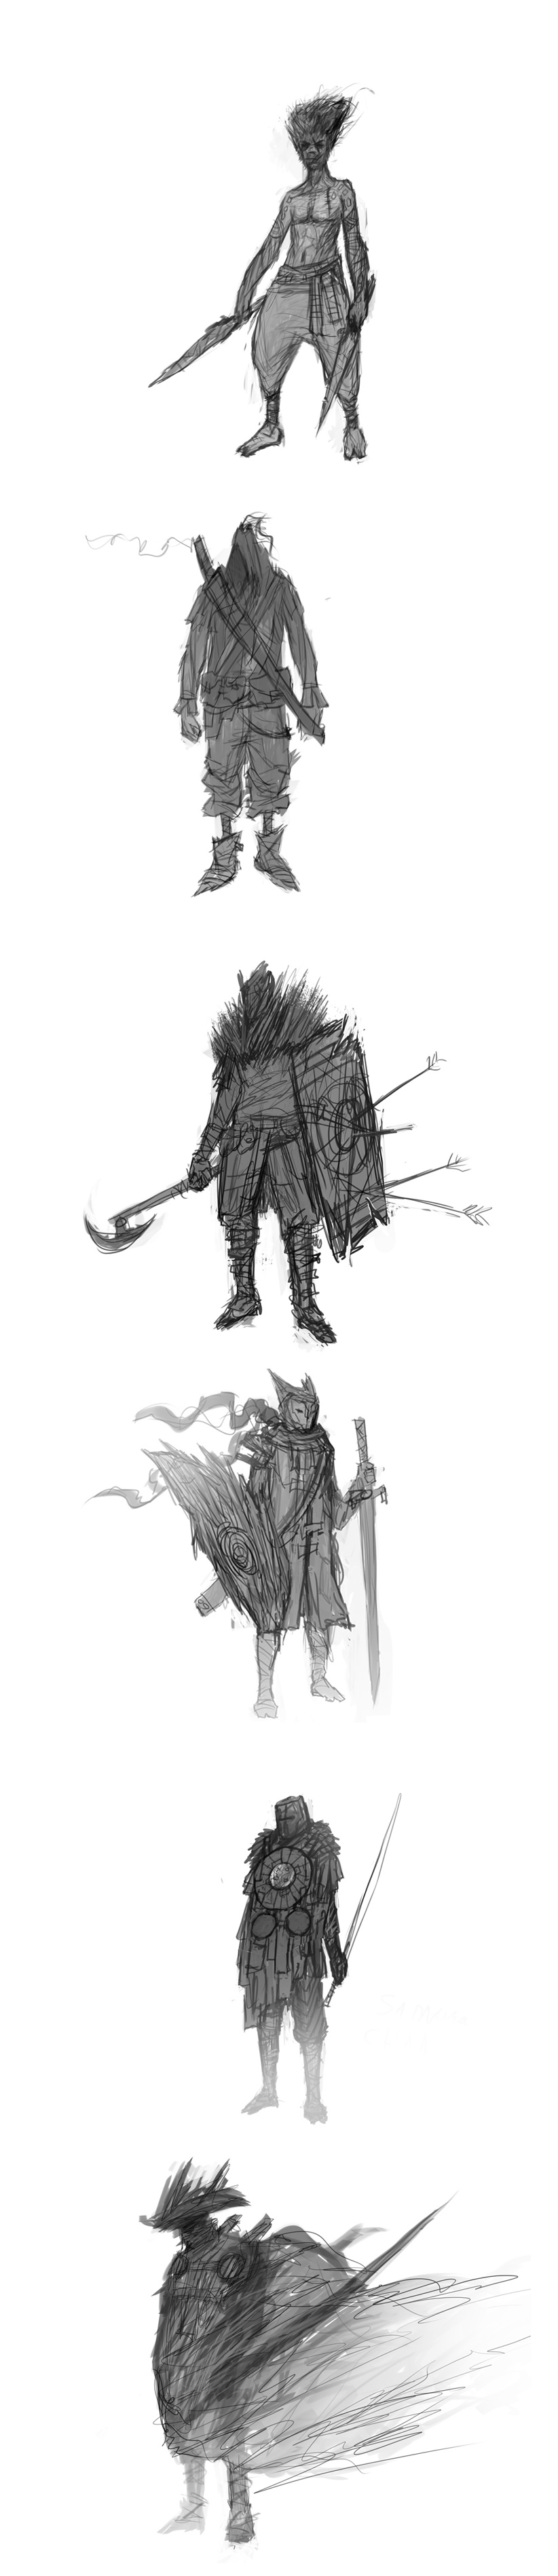 Warrior Sketches vol 1 by DanilLovesFood